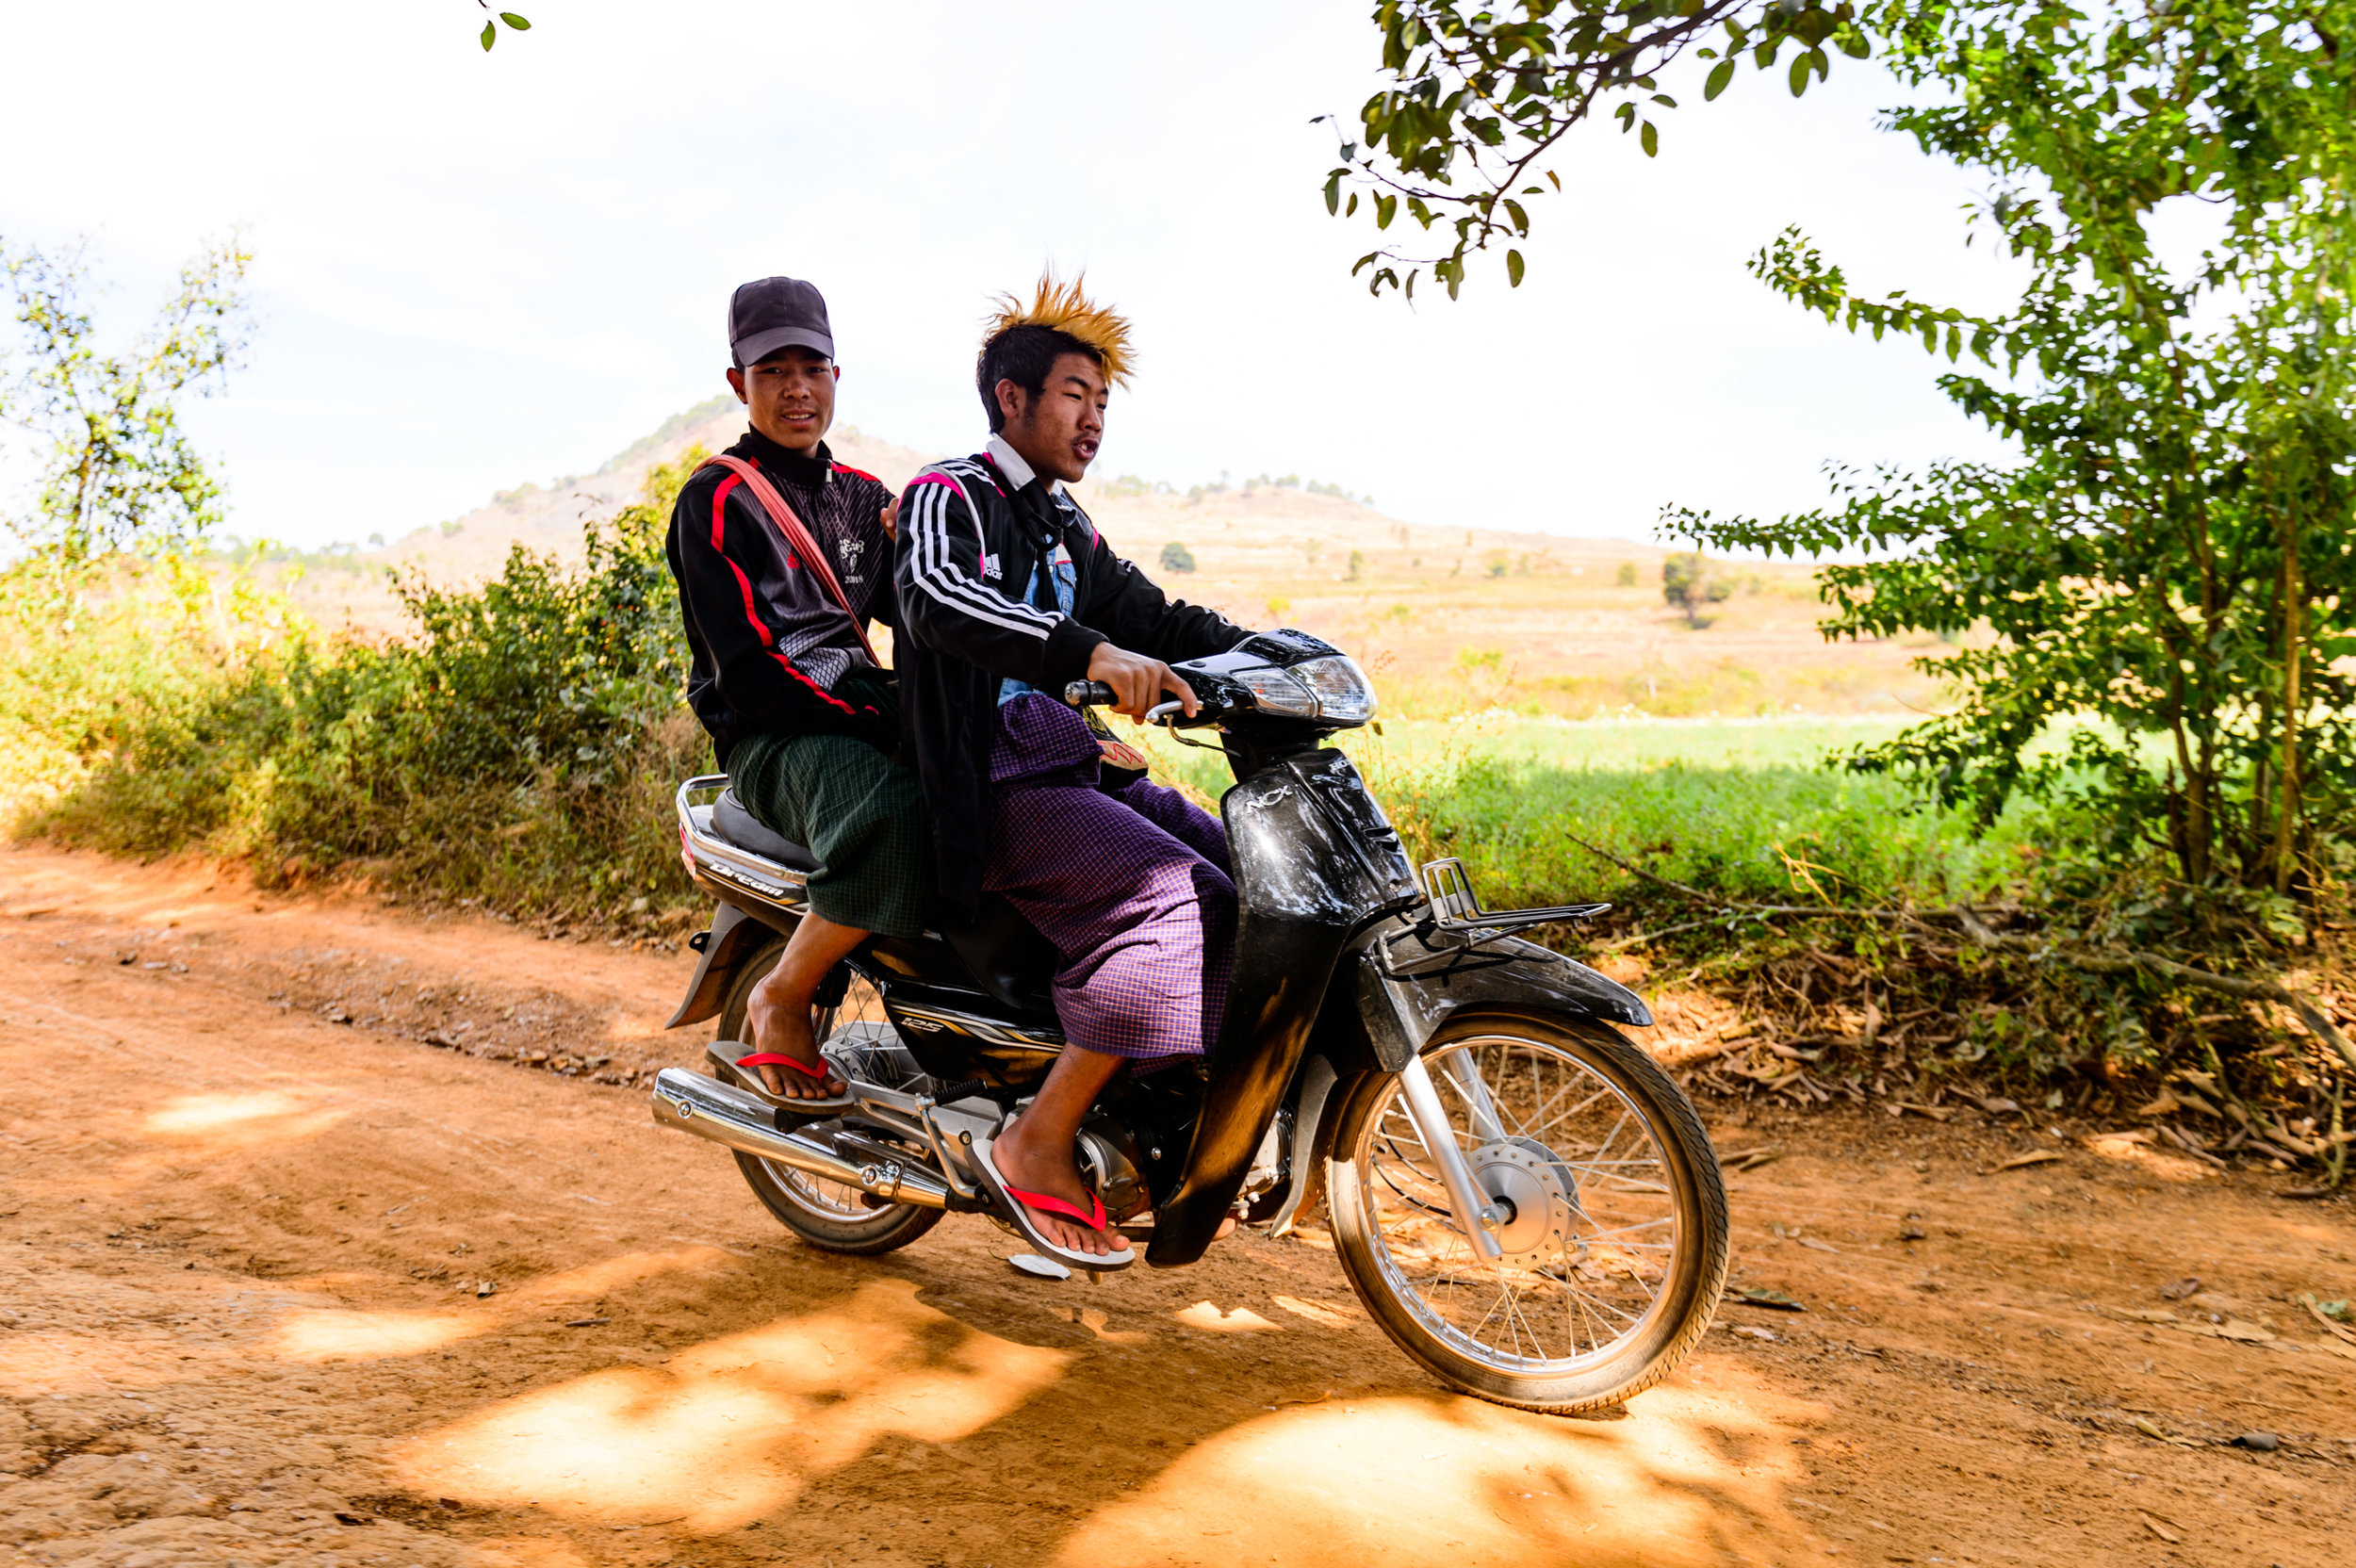 Typical Kalaw and/or Myanmar youth in general. Cool jackets/shirts, Longyi (unisex long skirt), and a friend with a Scooter. Good to go.